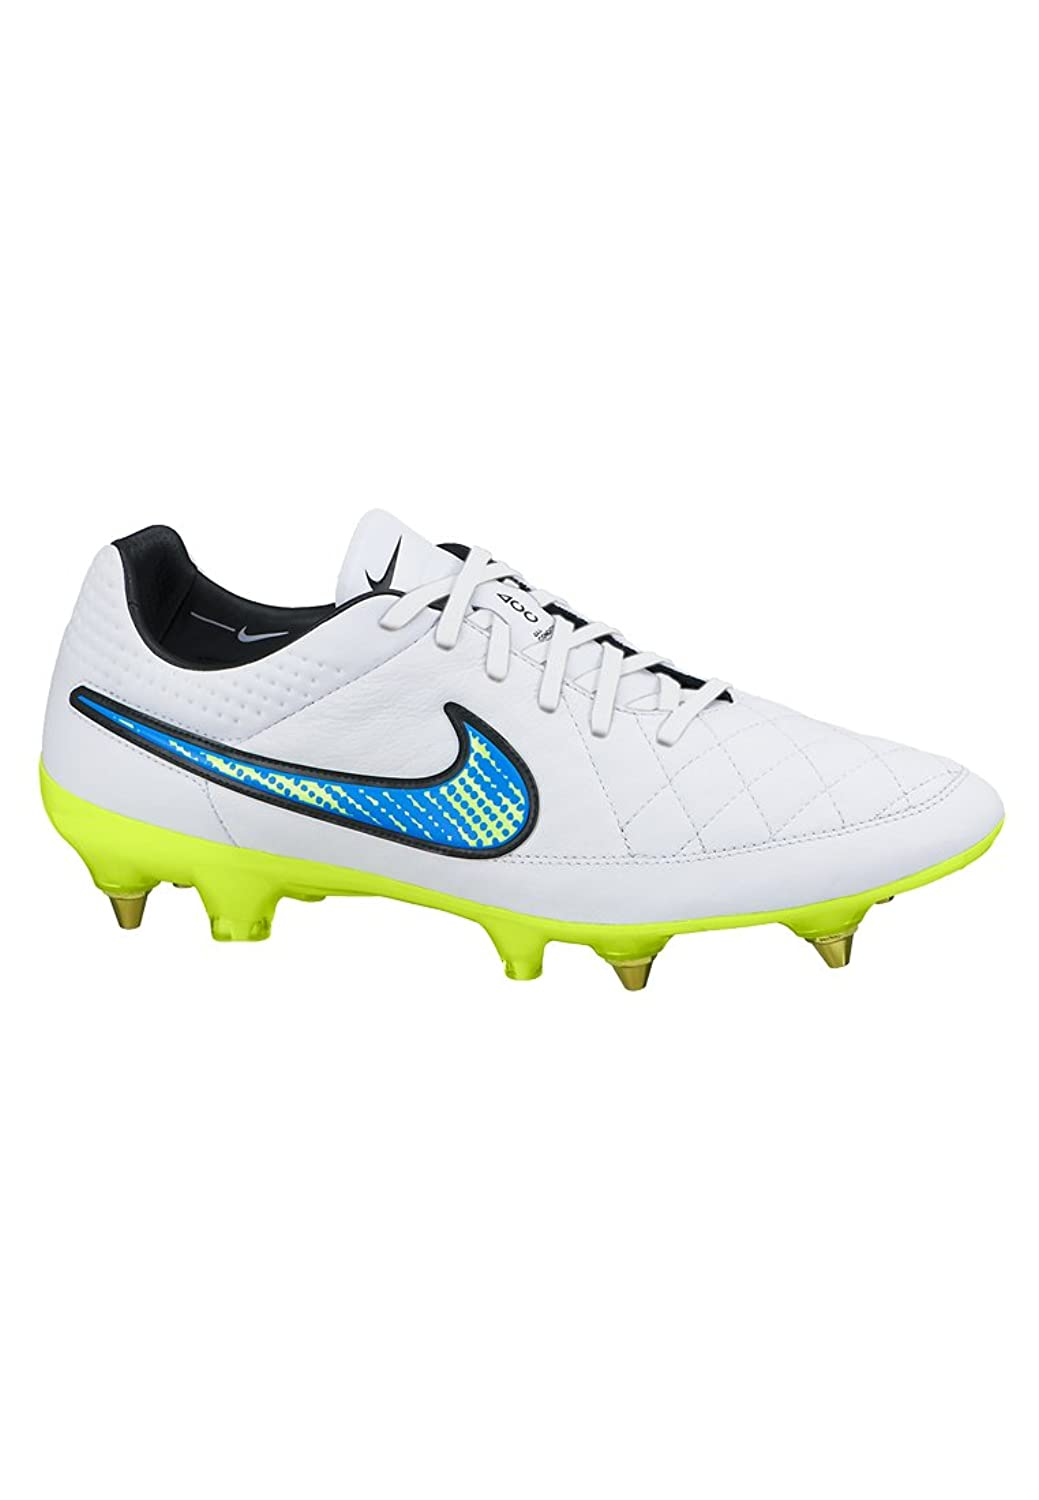 nike tiempo legend V SG-PRO mens football boots 631614 soccer cleats soft  ground (US 9.5, white volt soar black 174): Amazon.ca: Shoes & Handbags